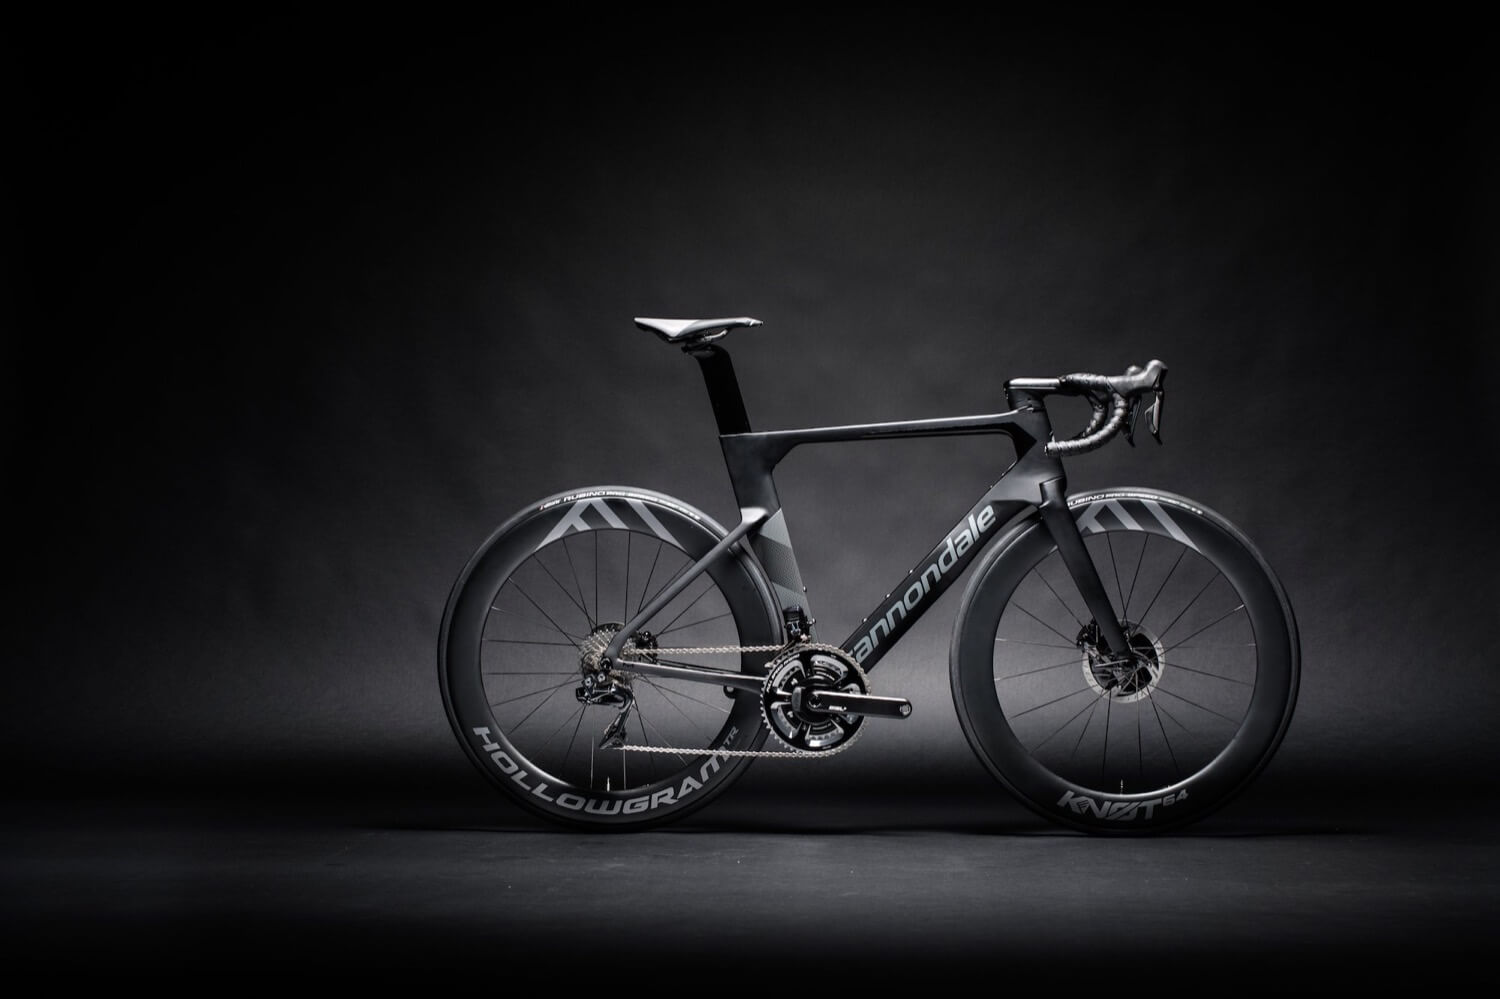 Fastest Road Bike >> New Cannondale Systemsix Is The Fastest Road Bike